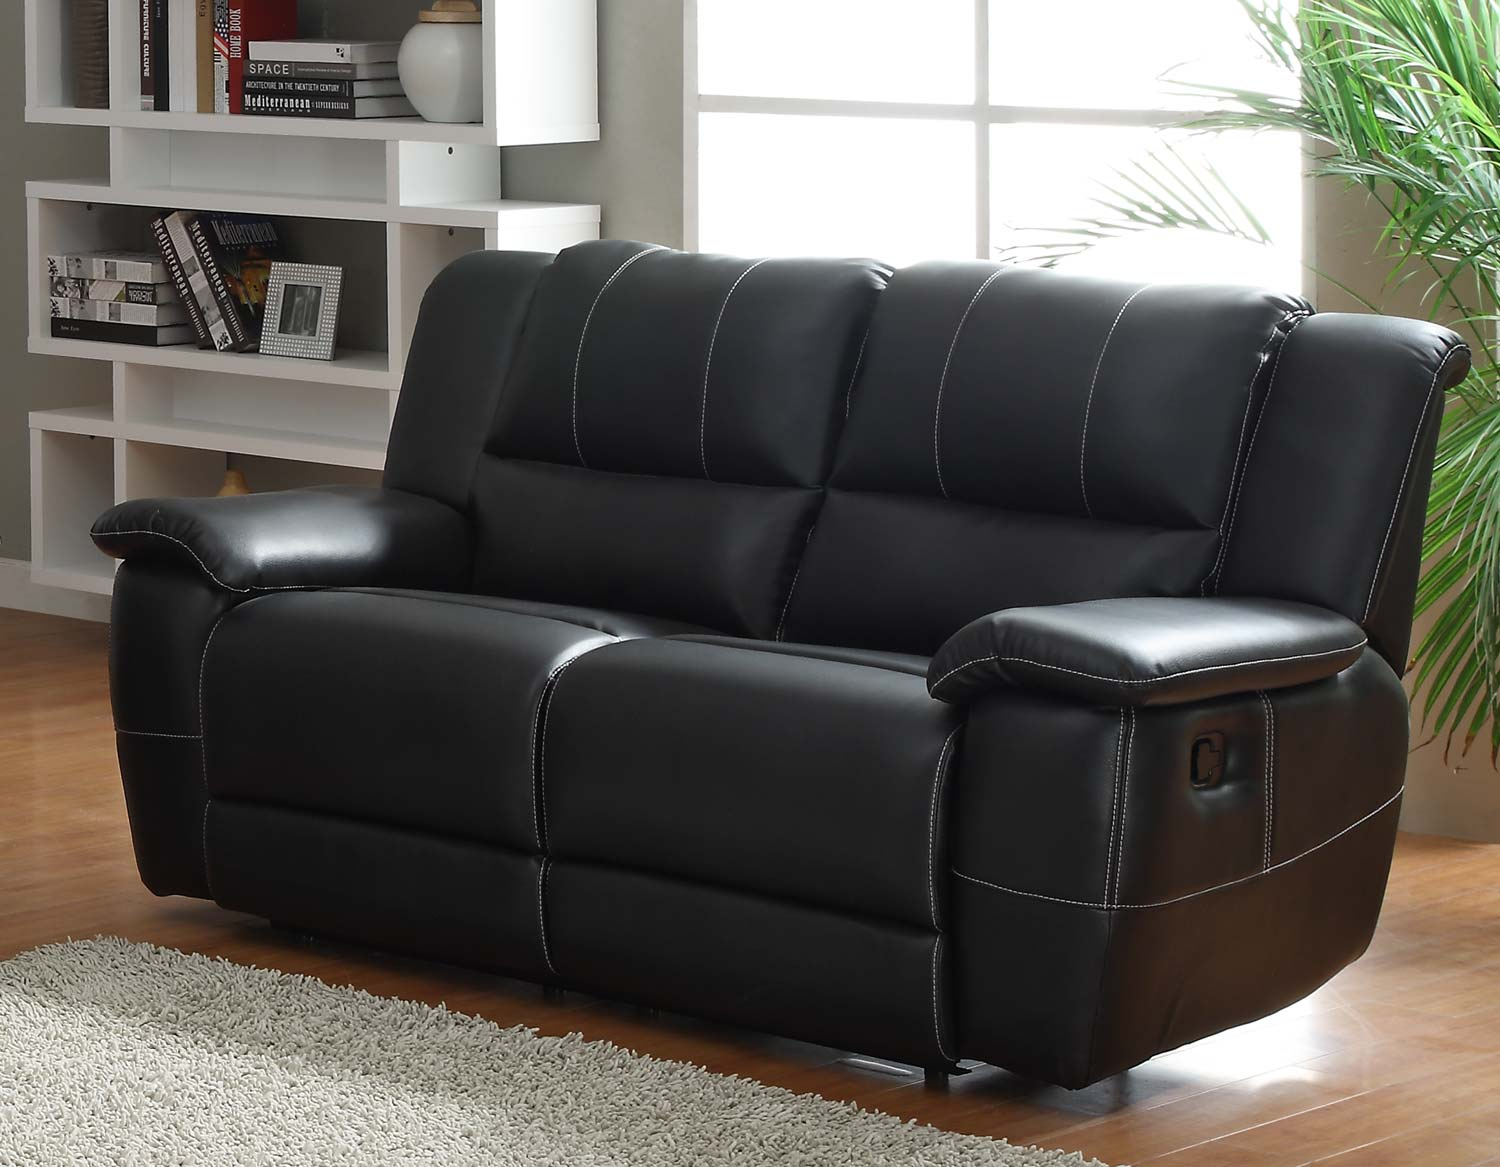 Homelegance cantrell reclining sofa set black bonded leather match u9778blk 3 Leather reclining sofa loveseat